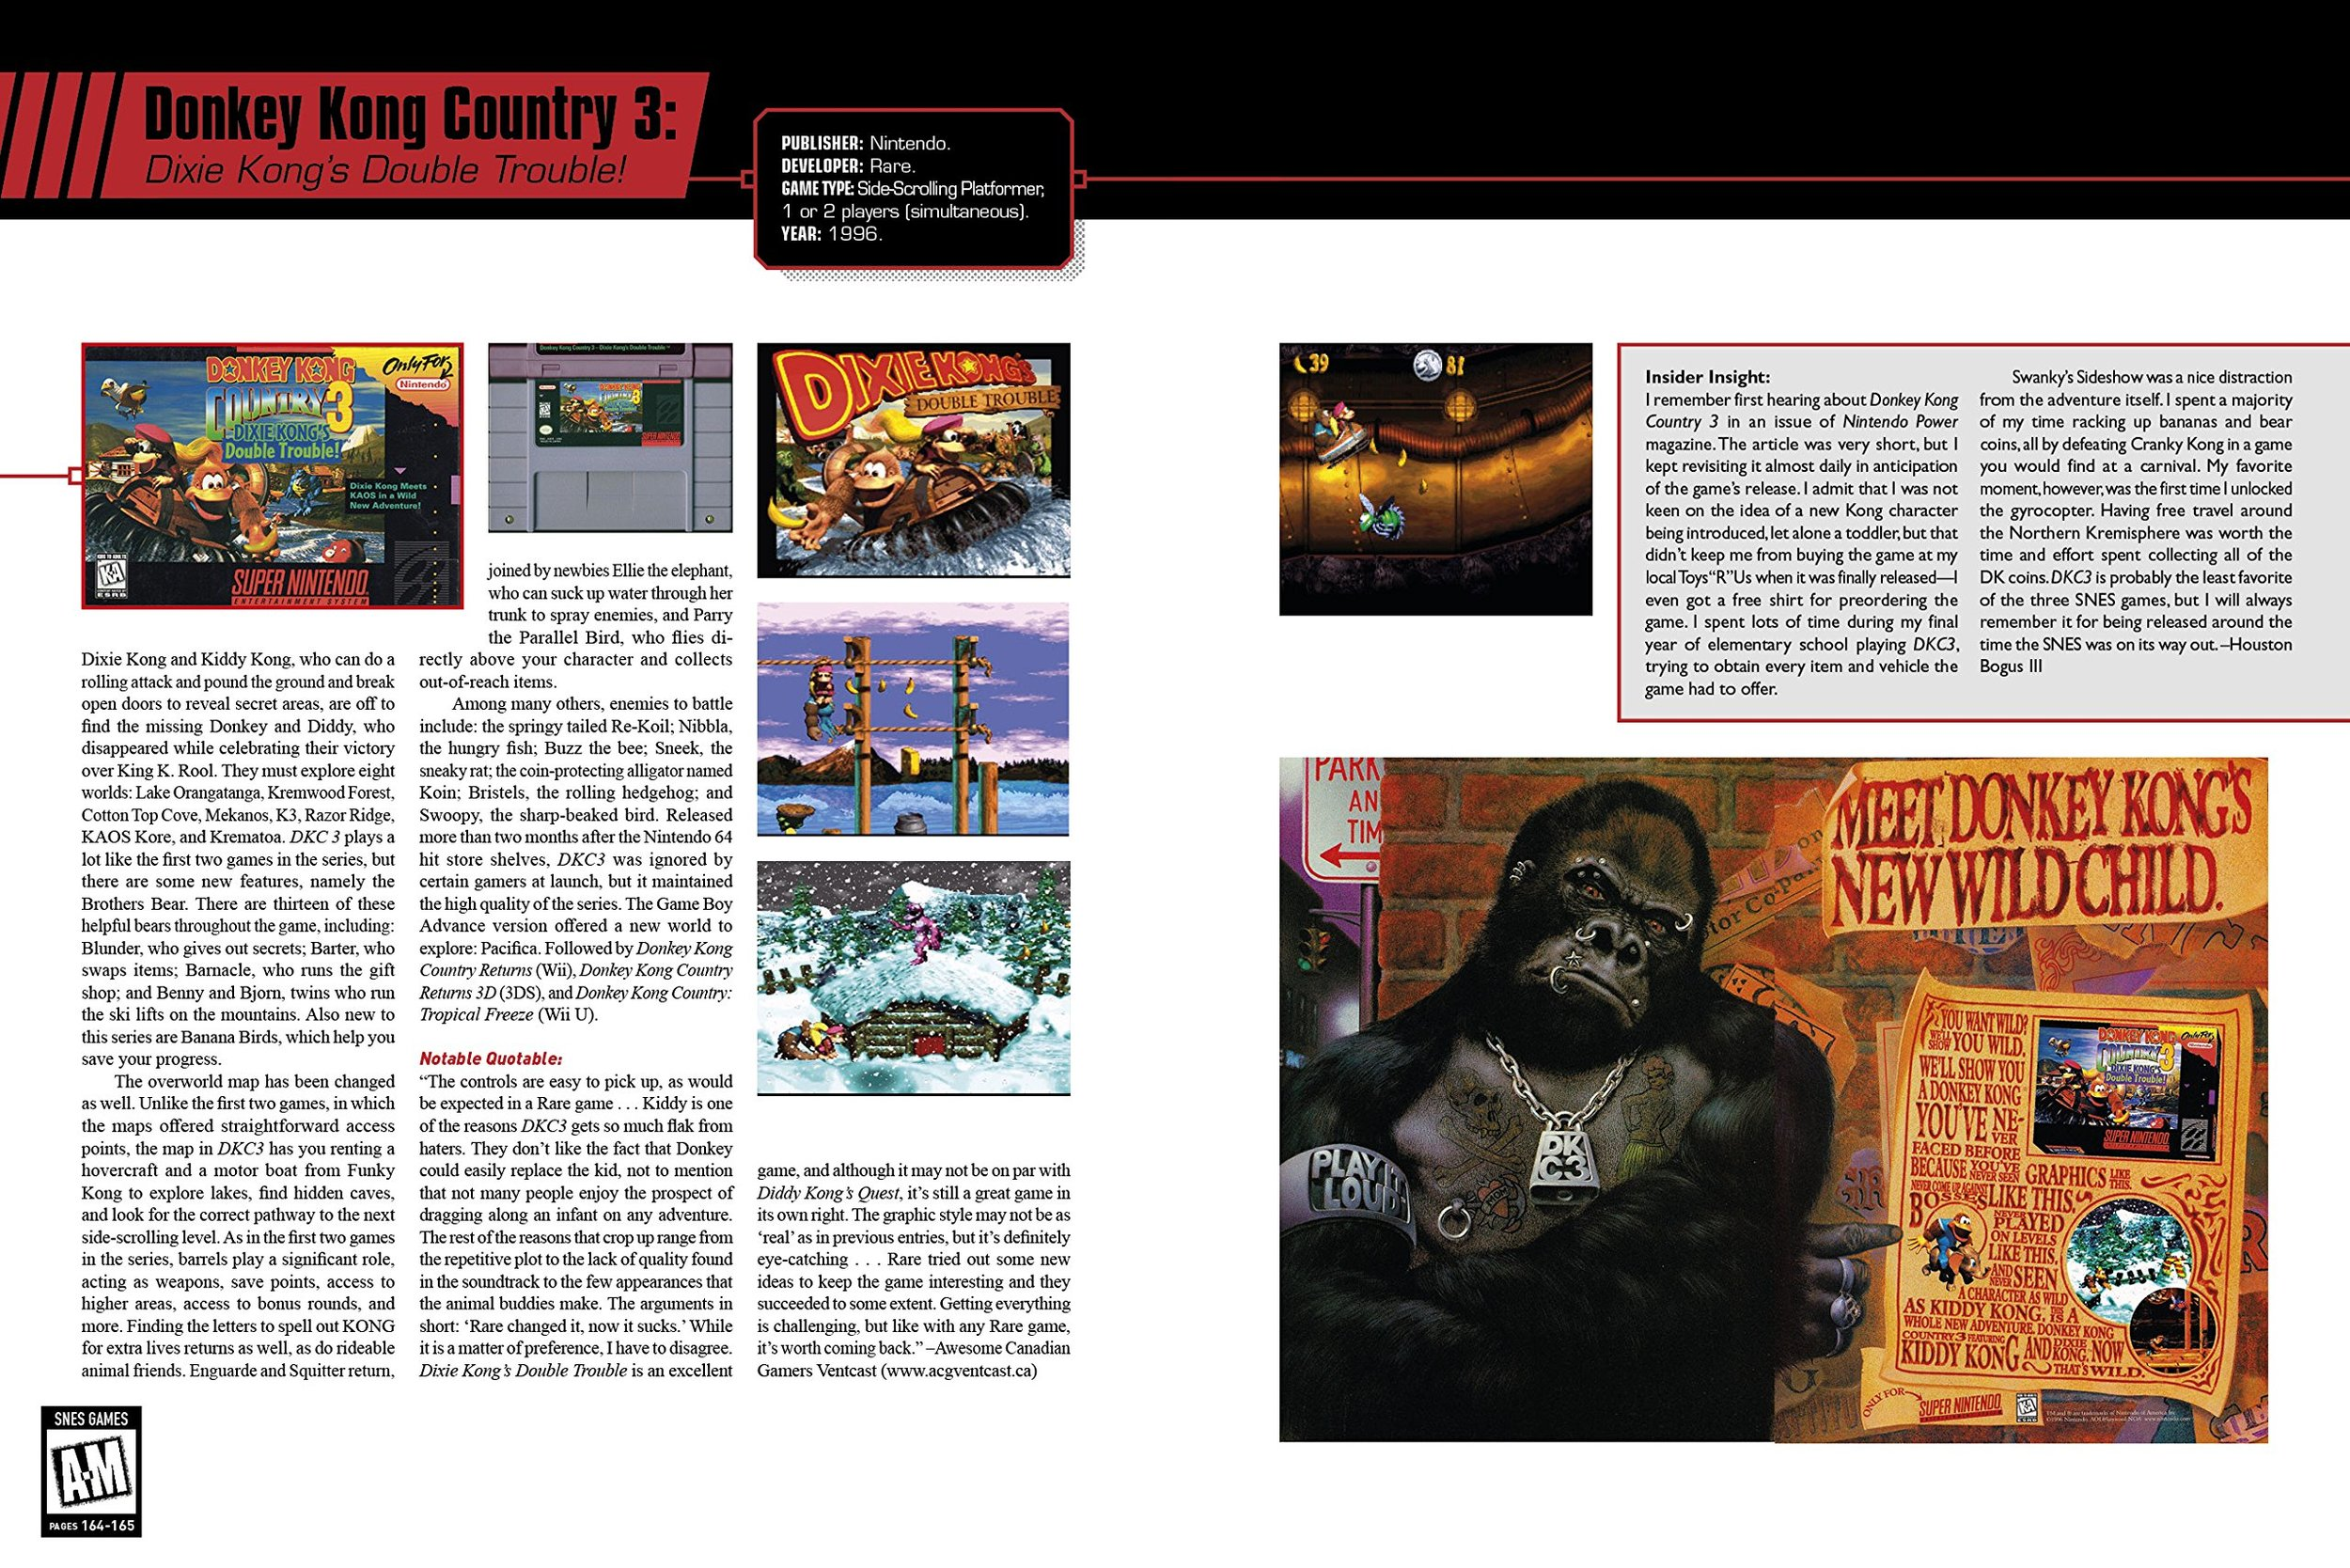 Each entry features information about the title, screenshots, box art, cartridge, and advertisements (if any).